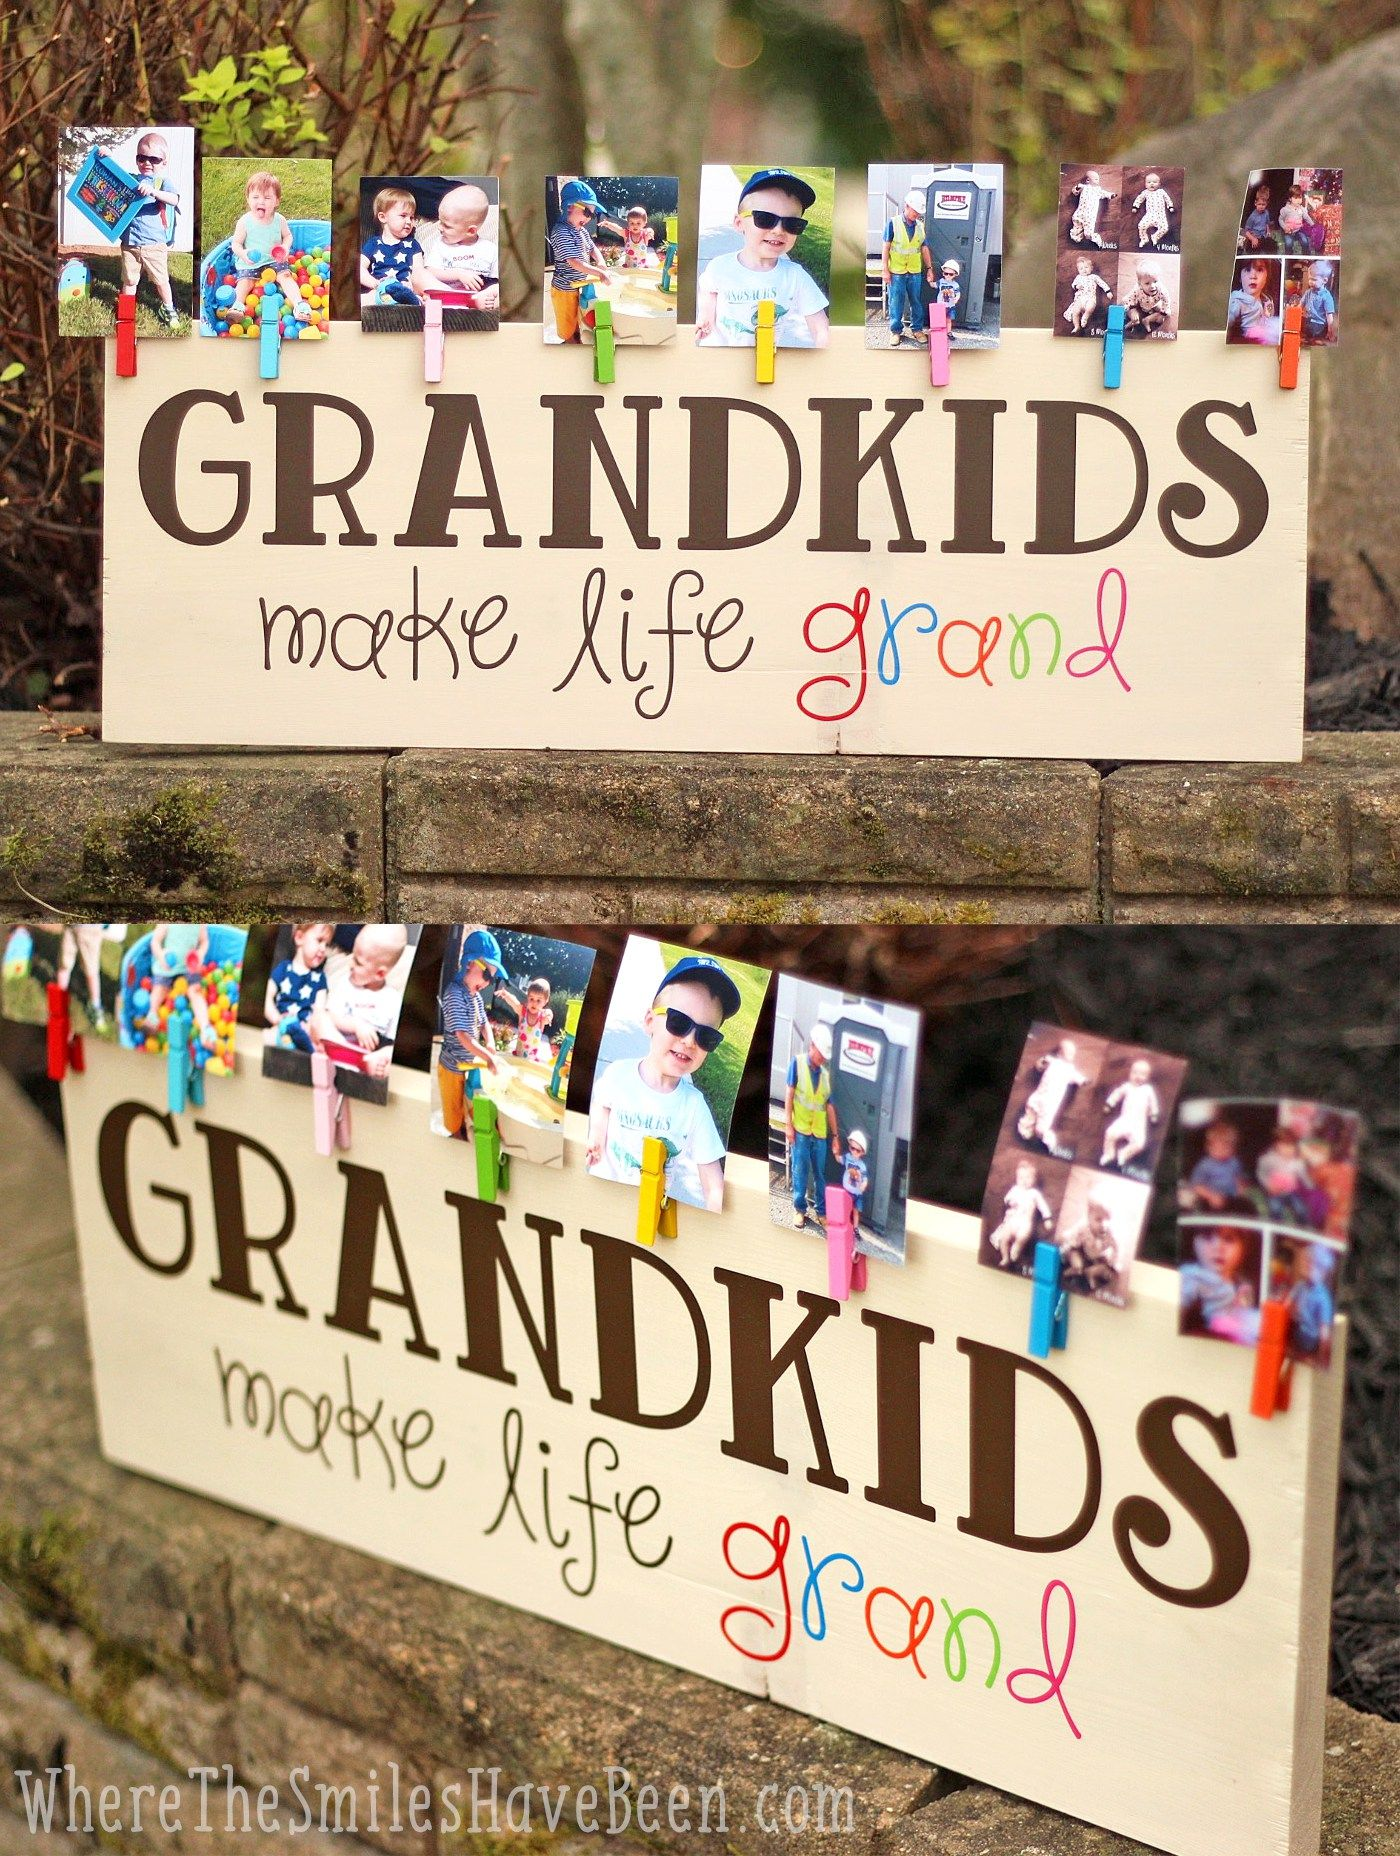 its a great diy gift idea colorful grandkids make life grand wood sign photo display where the smiles have been